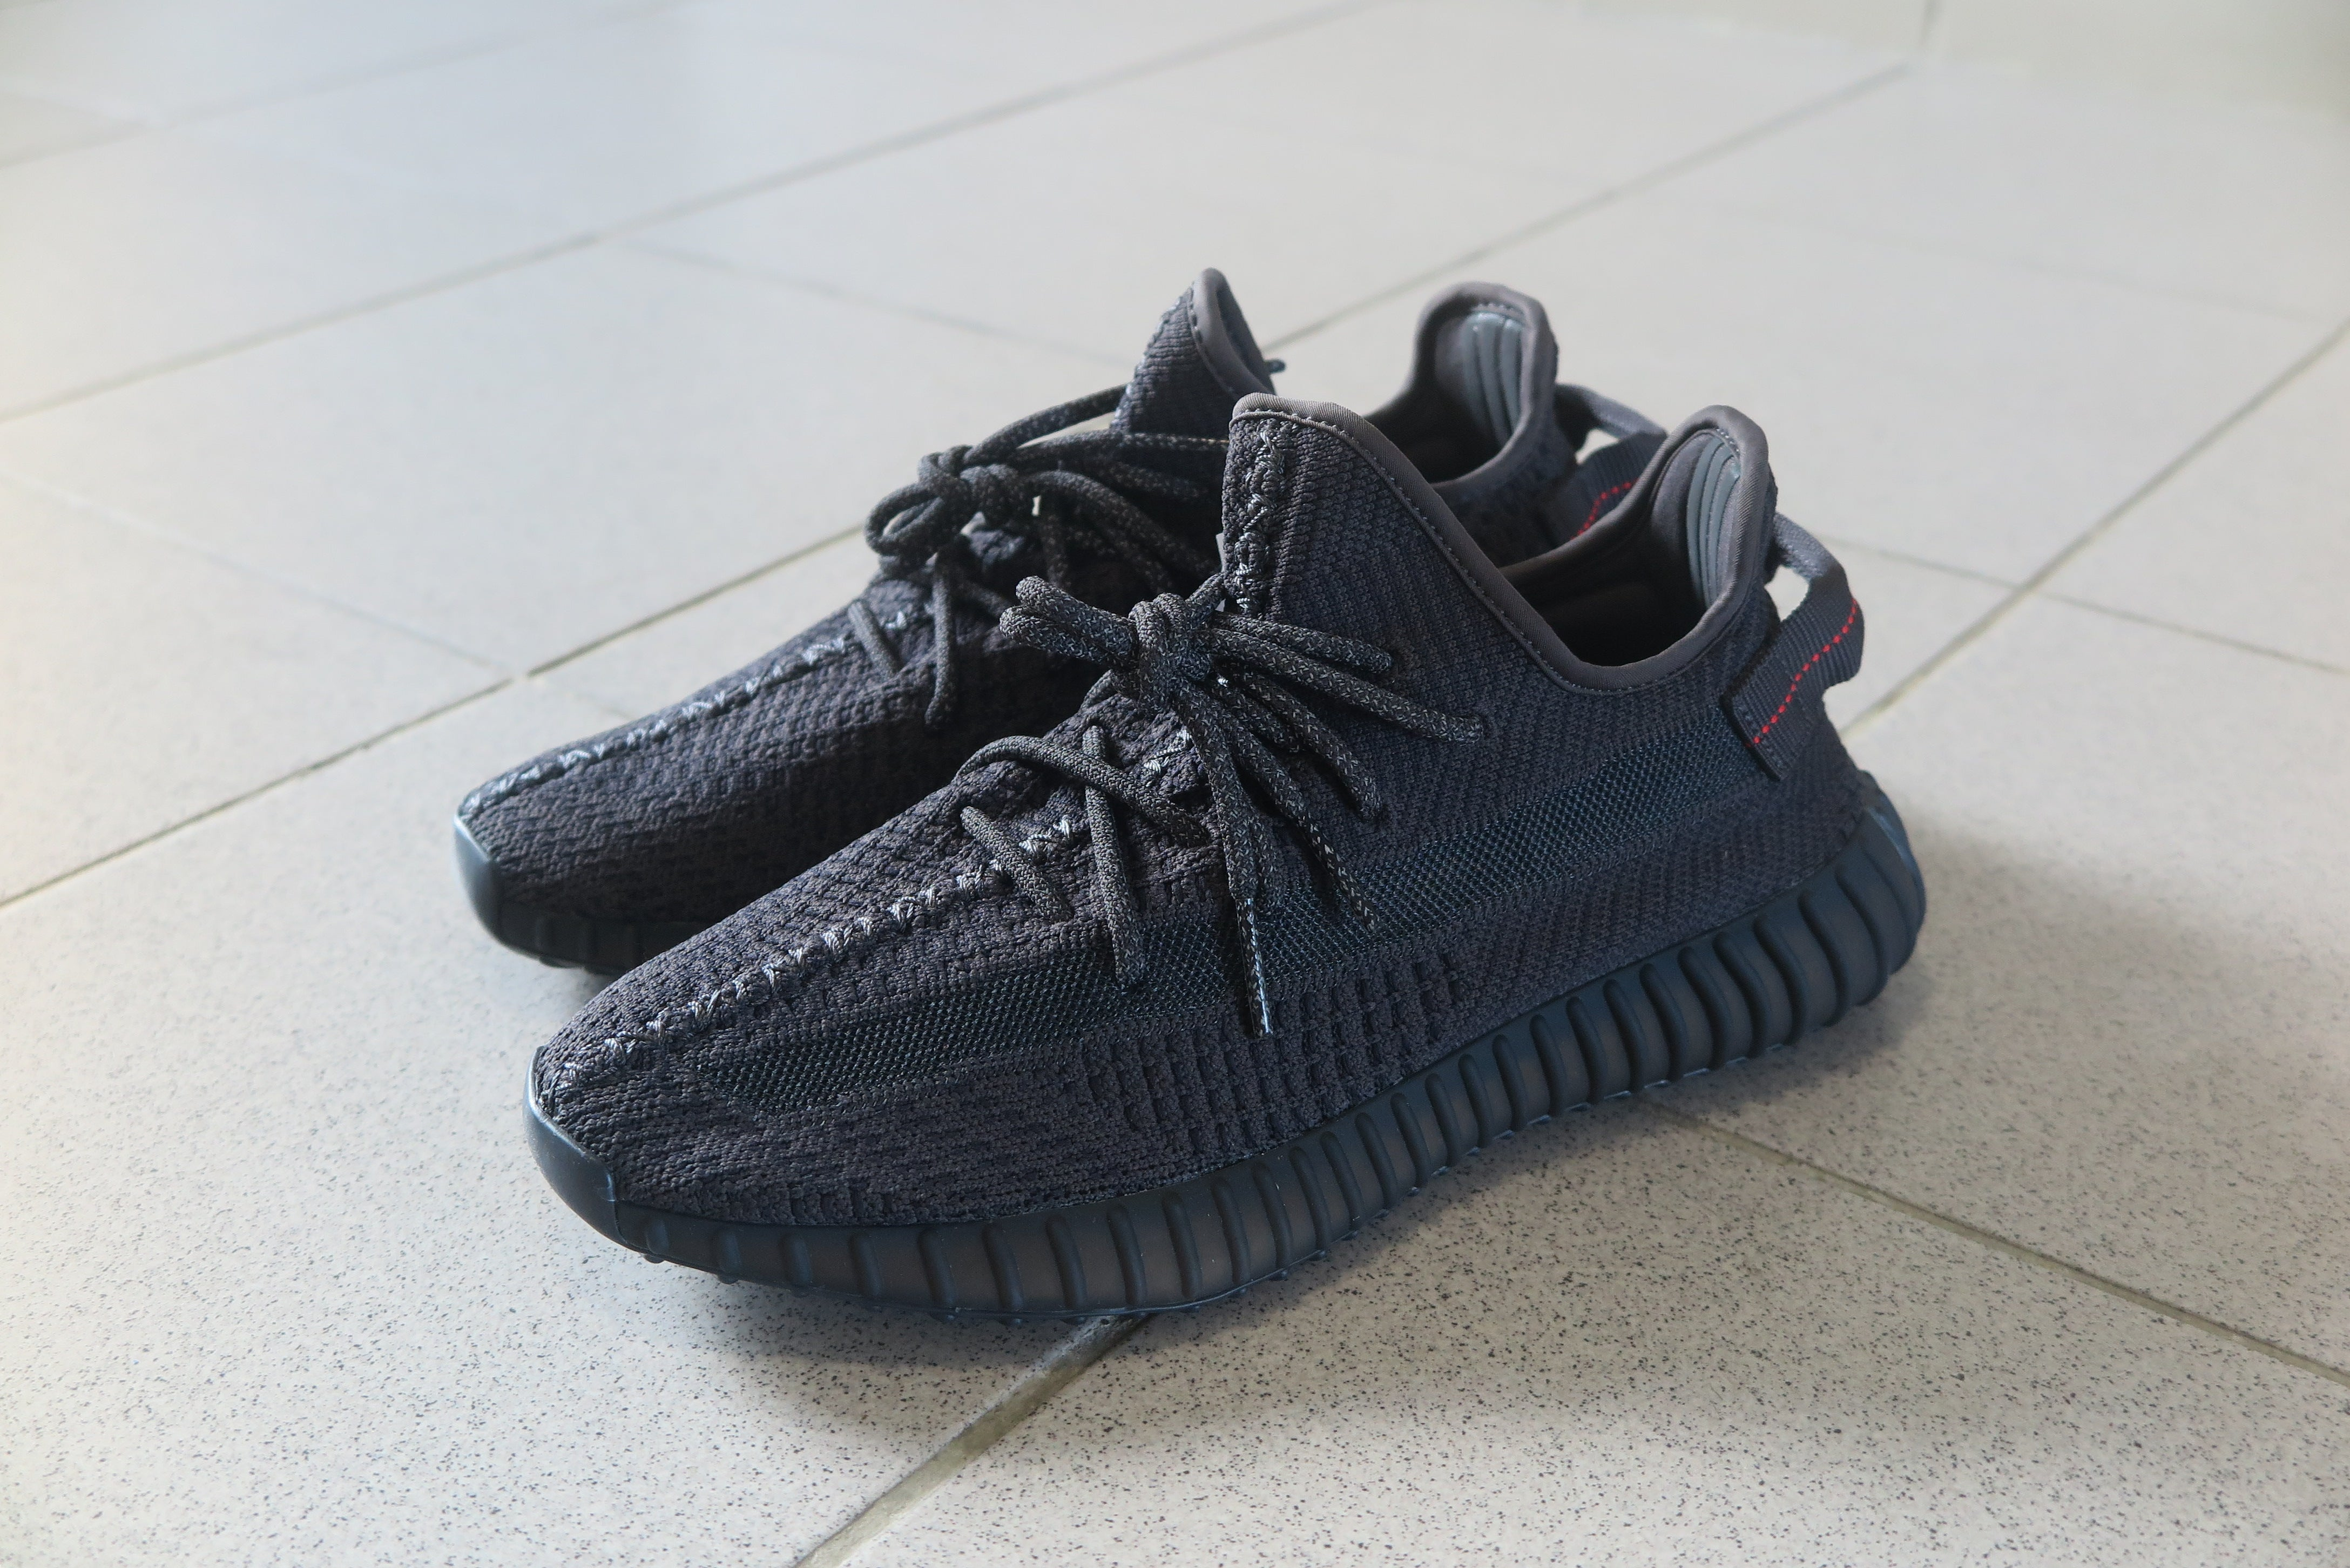 promo code d3344 78d37 adidas Yeezy Boost 350 V2 - Black Non-Reflective  FU9006-Sneakers-Navy